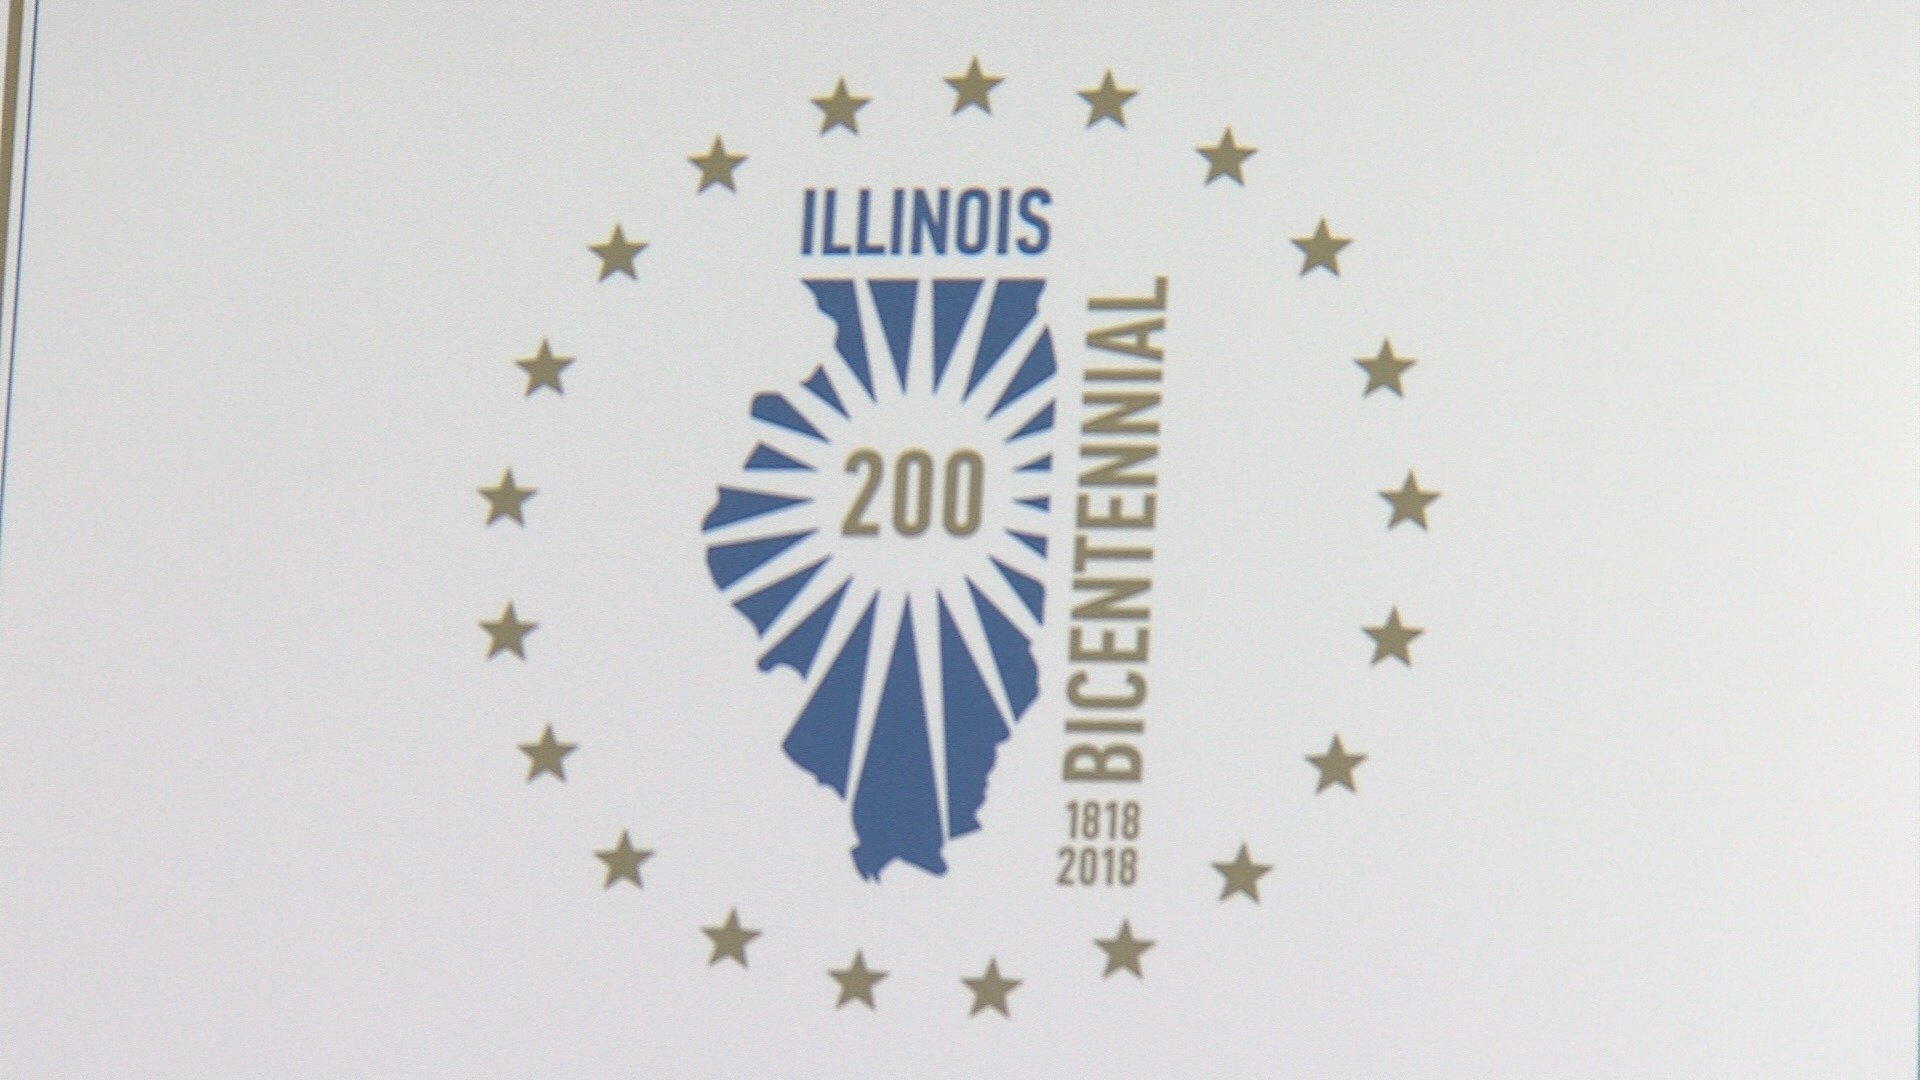 Illinois leaders mark state's 199th birthday; eyes on 200th